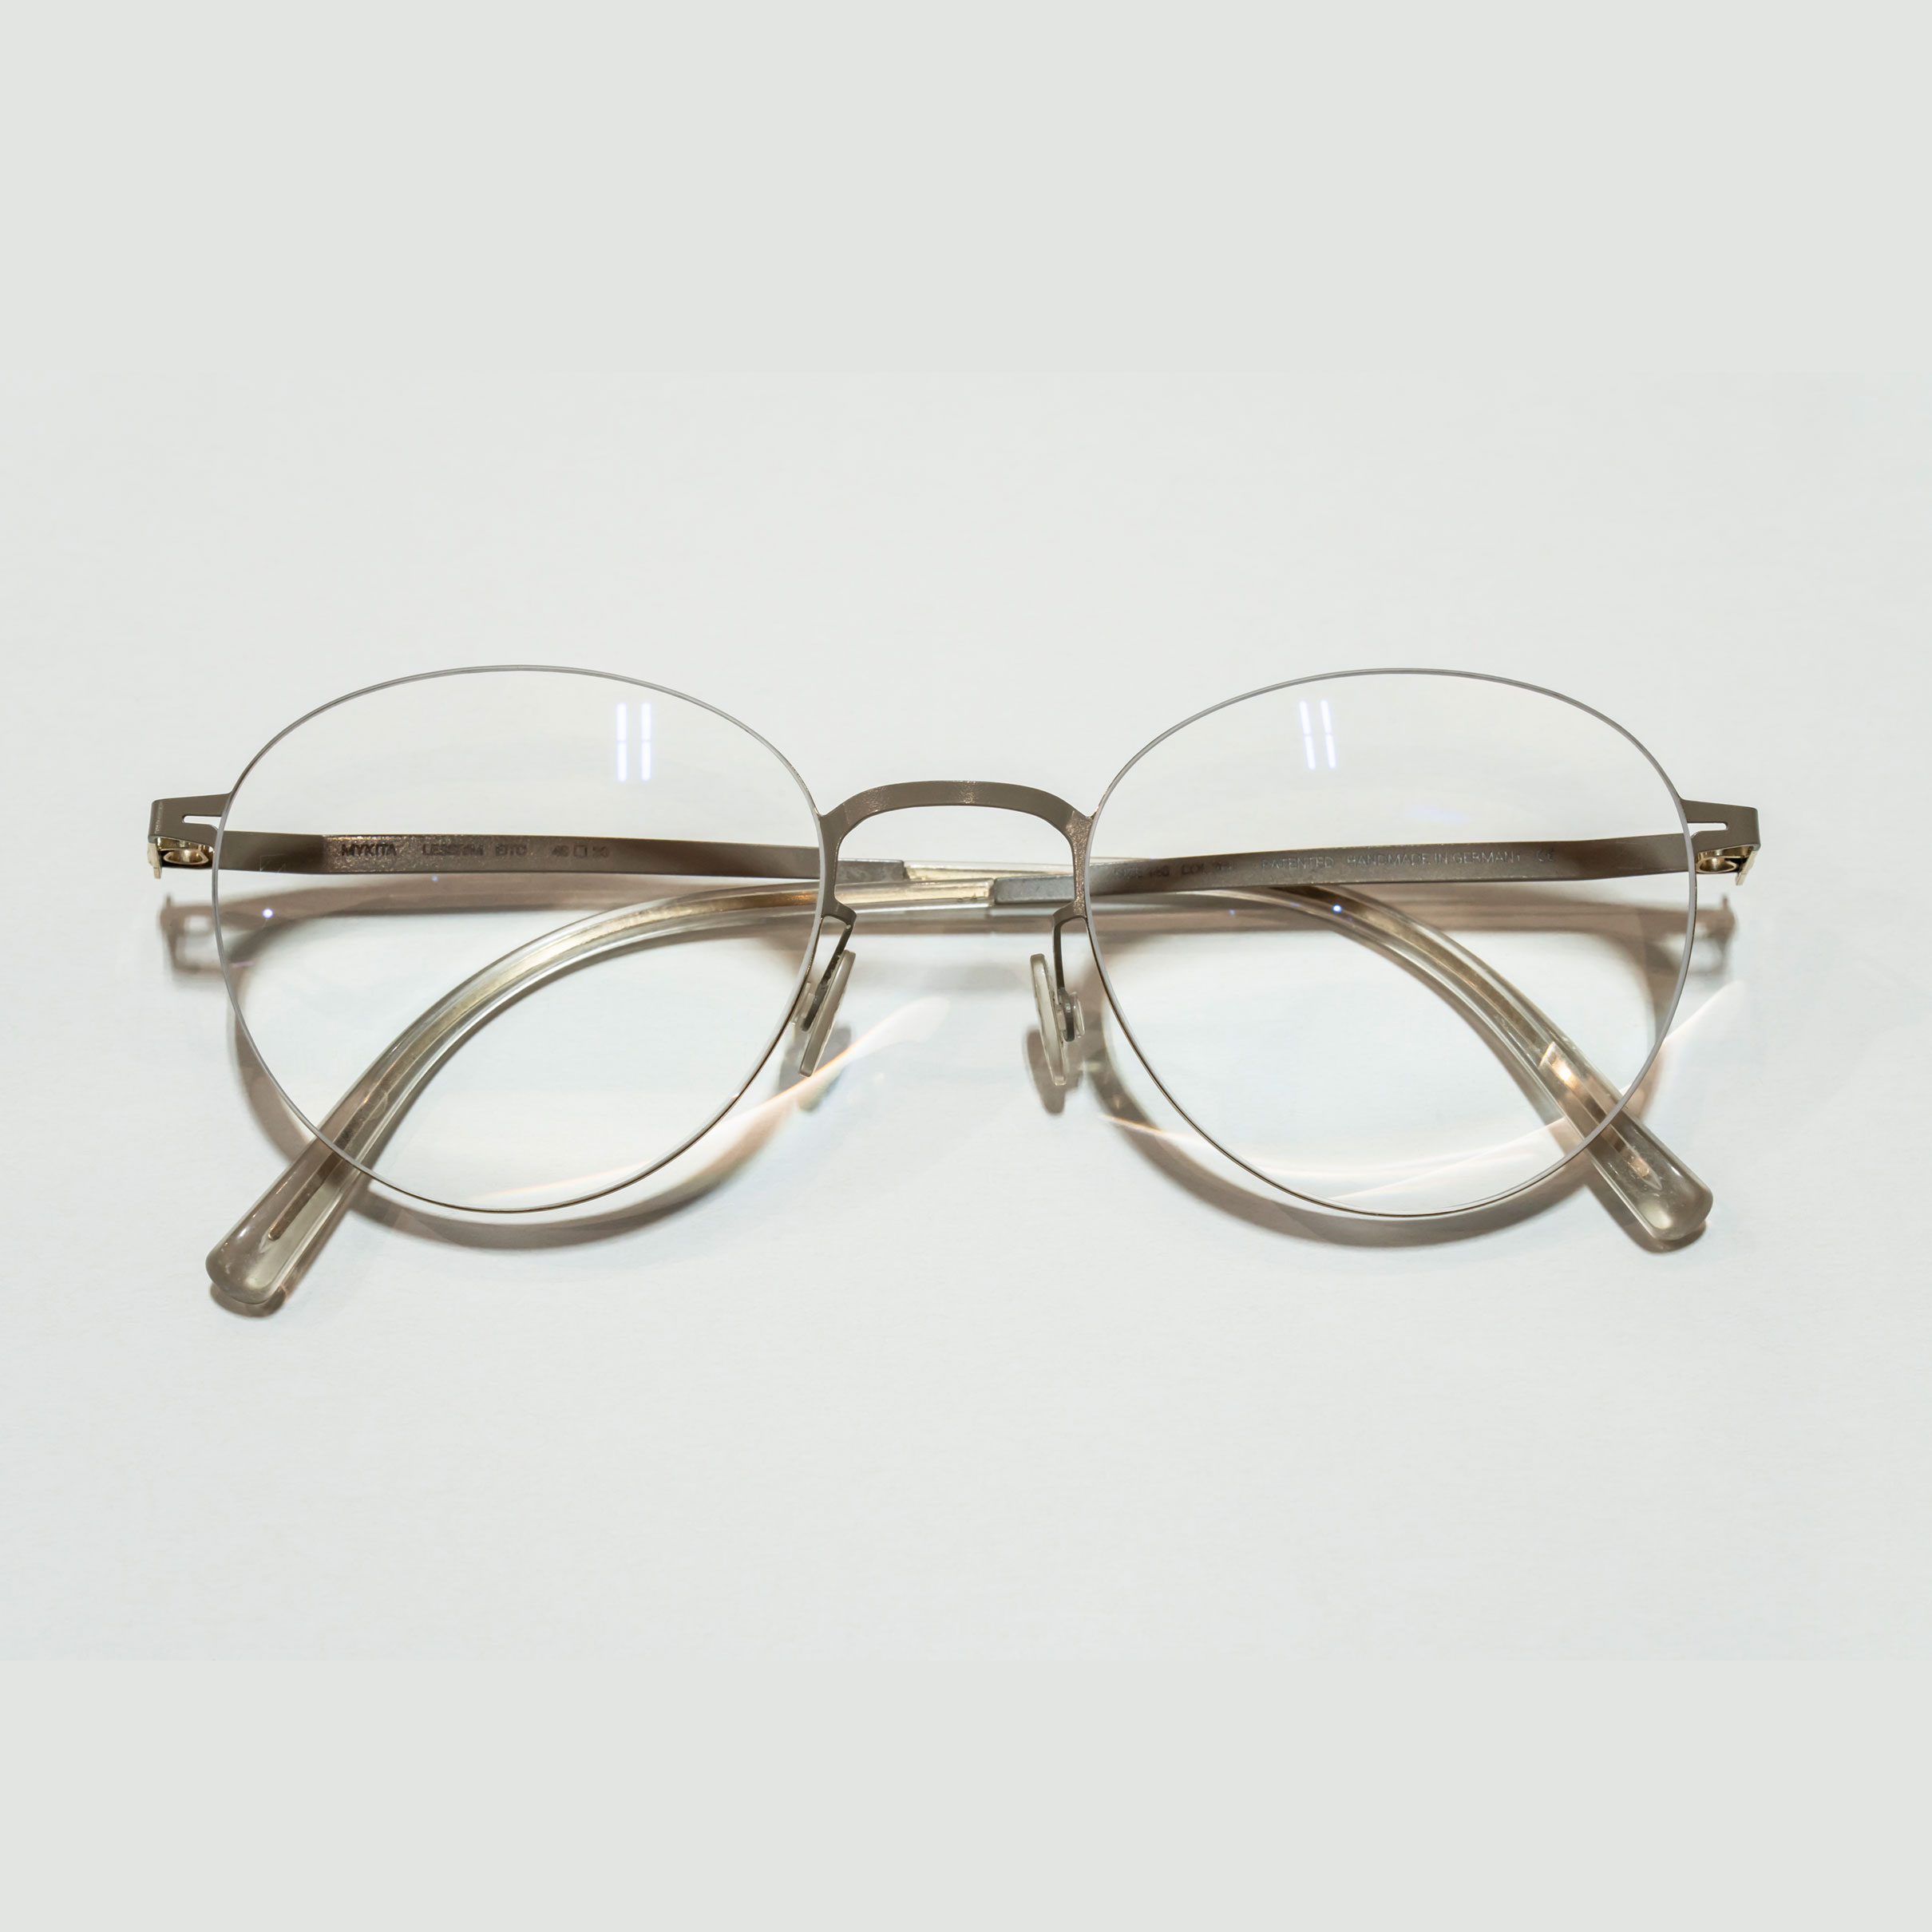 Olafur Eliasson: the glasses that taught me to see